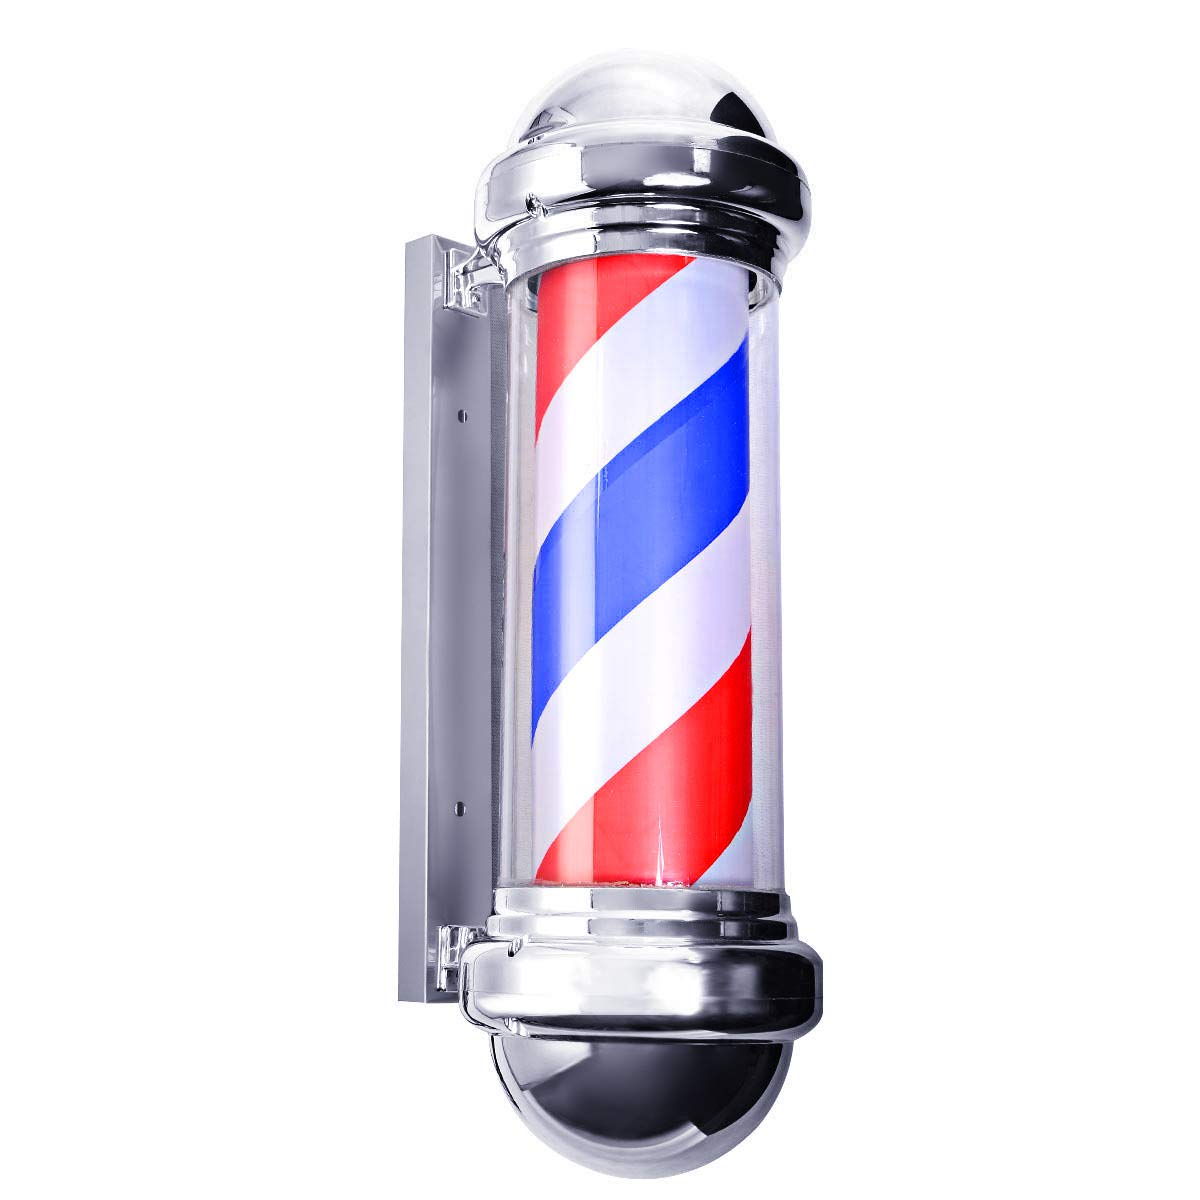 Giantex 30'' Barber Pole LED Light, Hair Salon Barber Shop Open Sign, Rotating Red White Blue Spinning Strips, Dual Switches for Power Saving, Large Outdoor Decor Pole Signs by Giantex